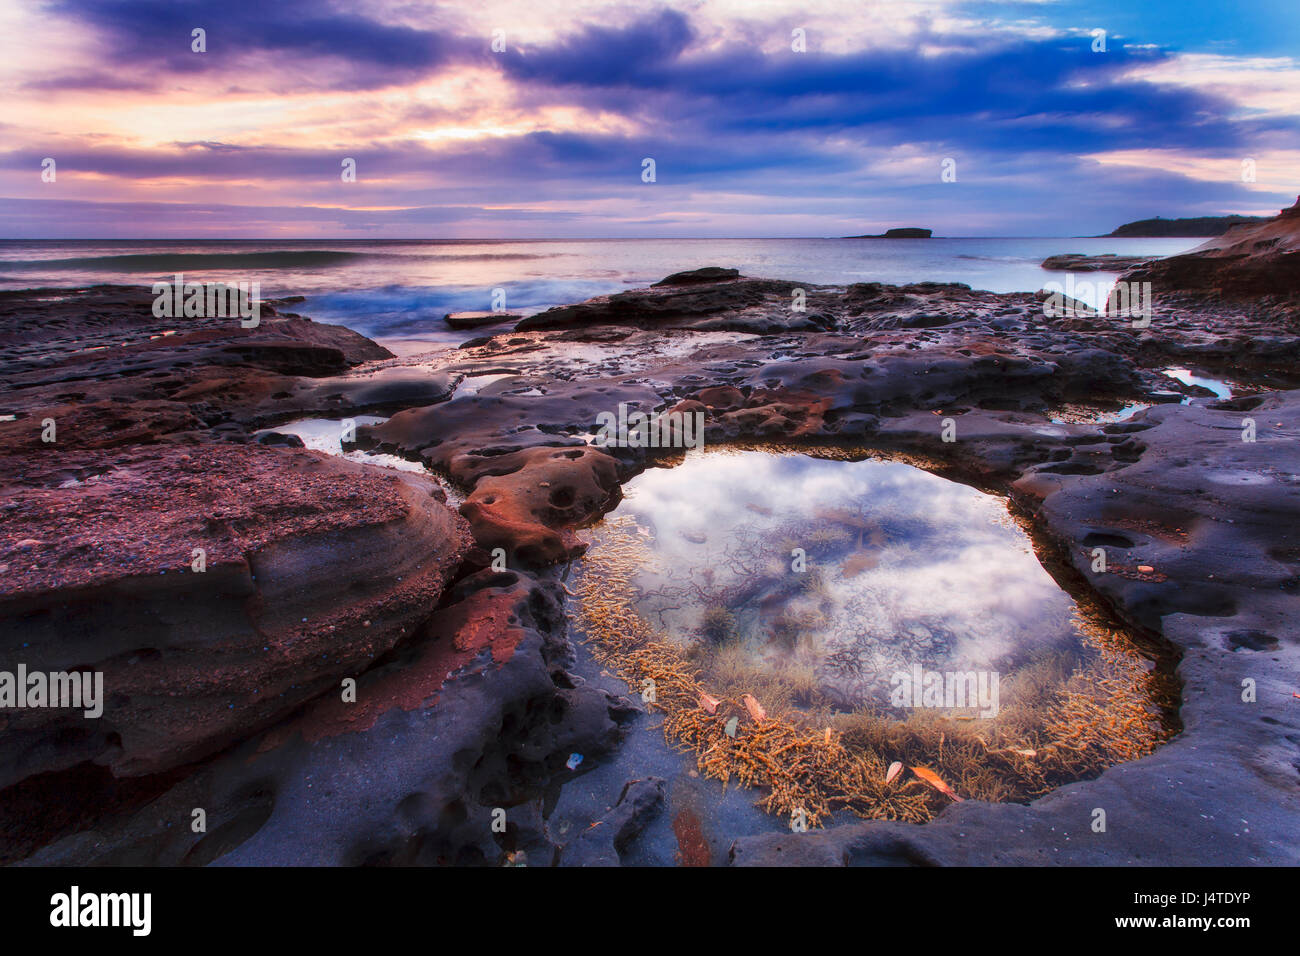 Cloudy sunrise over South Durral rocky sea head at low tide when saltwtter puddles hold water and seaweeds. - Stock Image